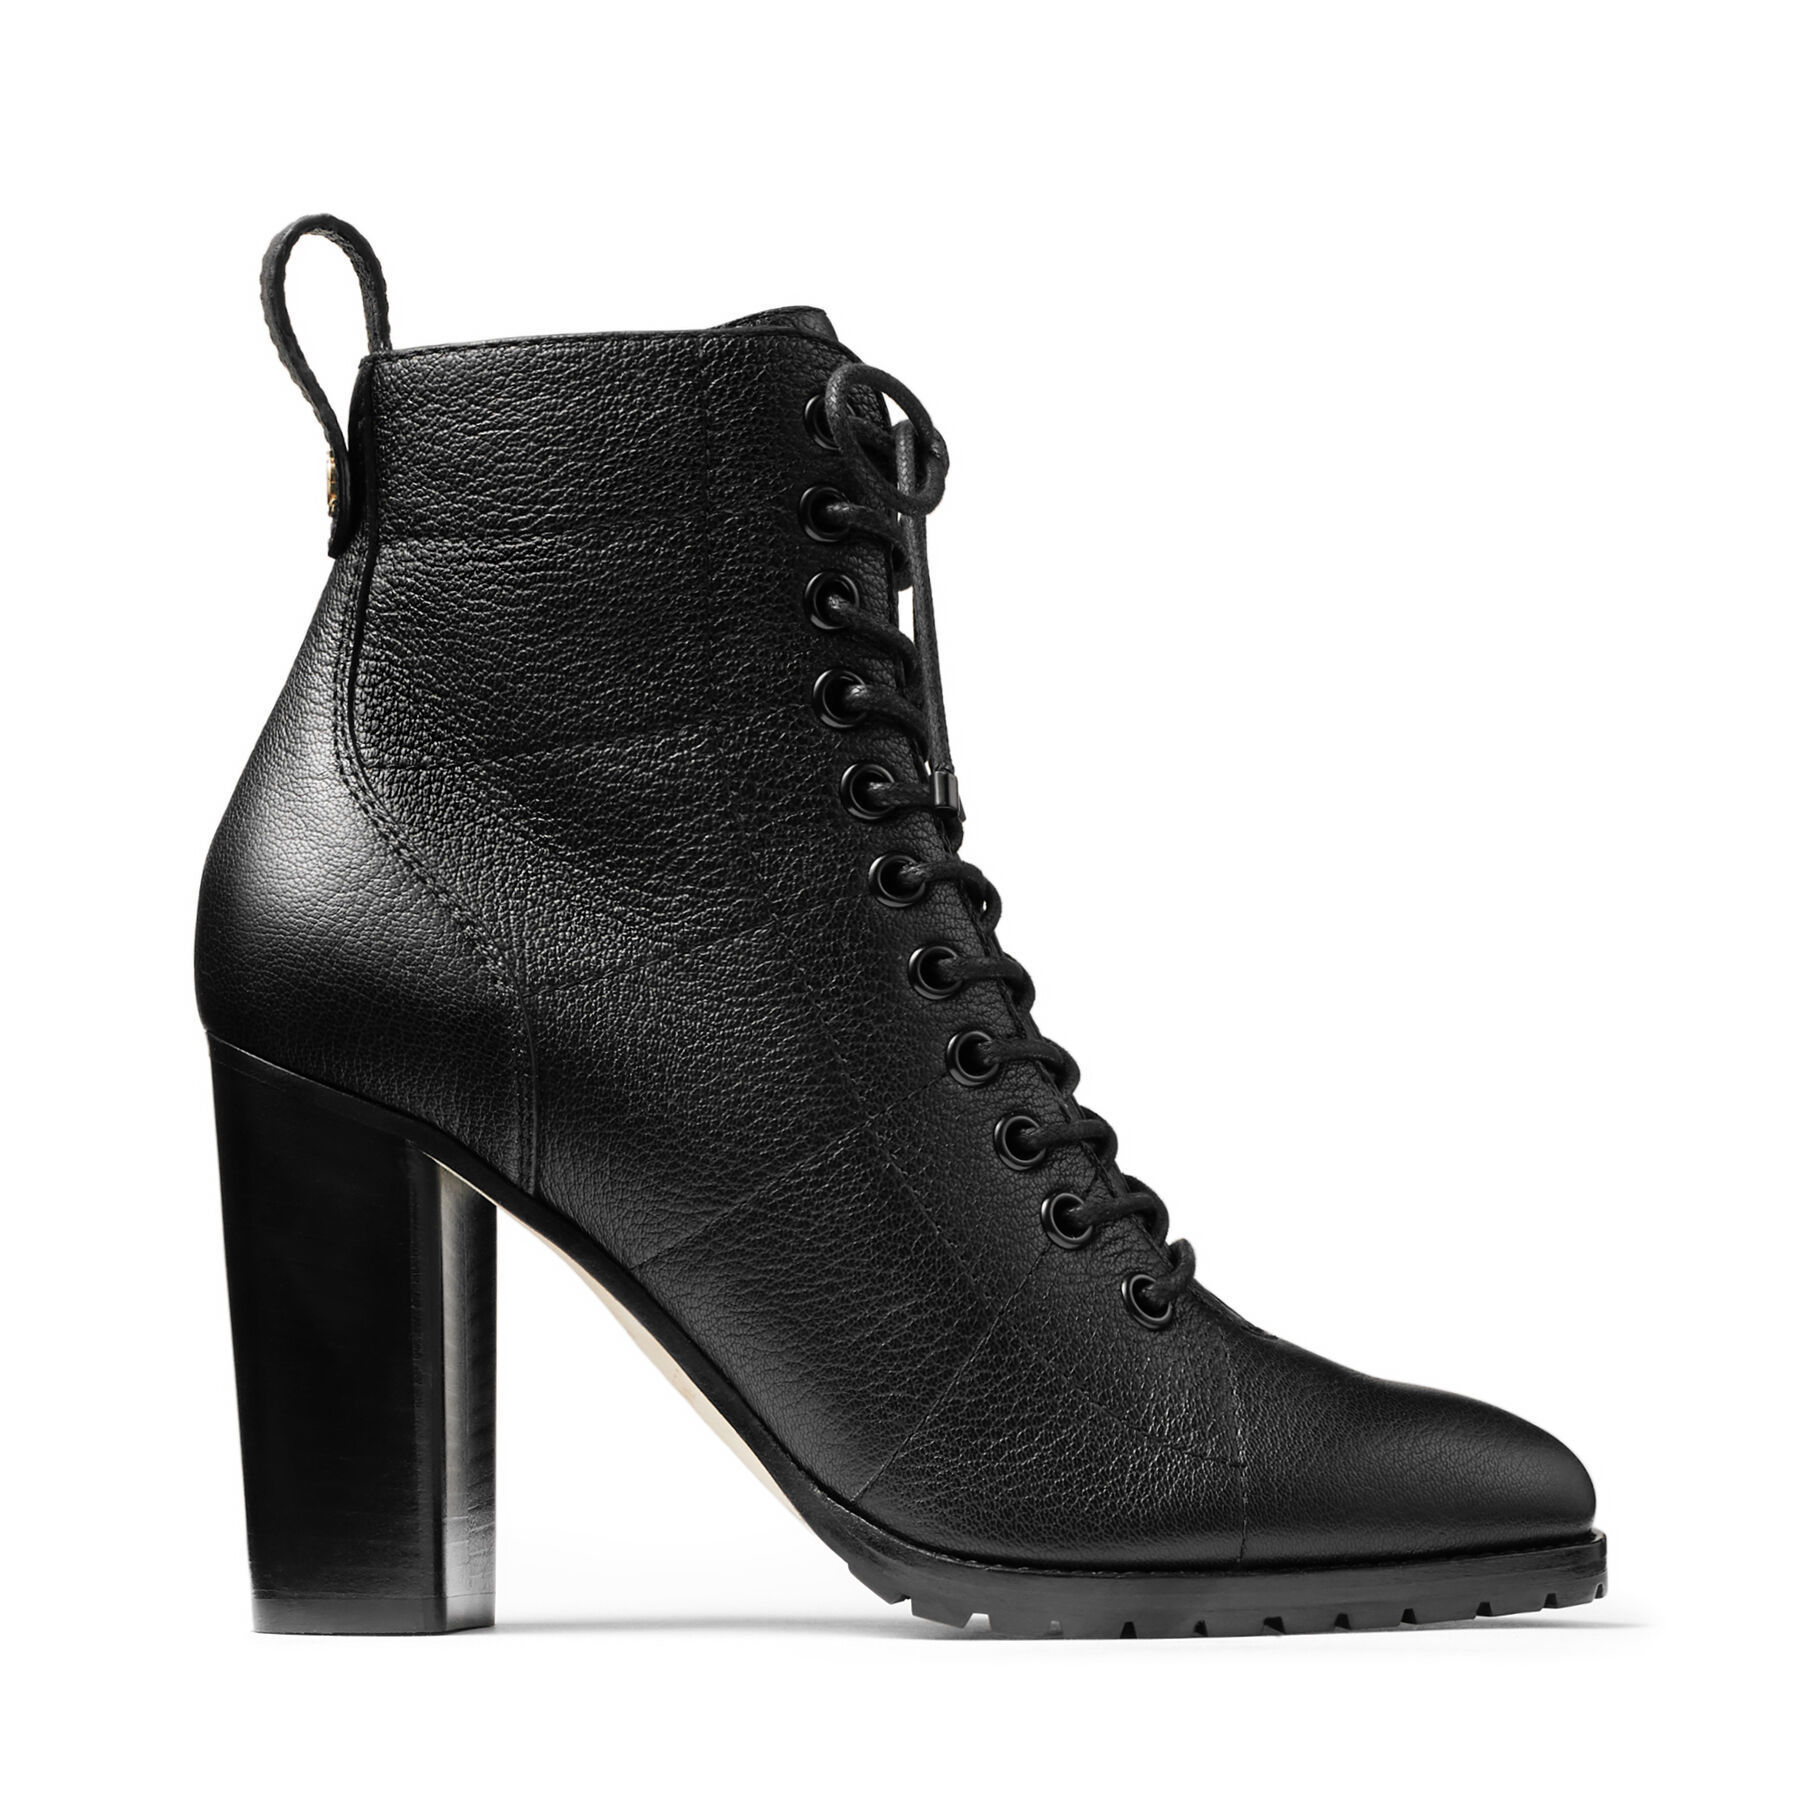 Shop Jimmy Choo Lace-up Casual Style